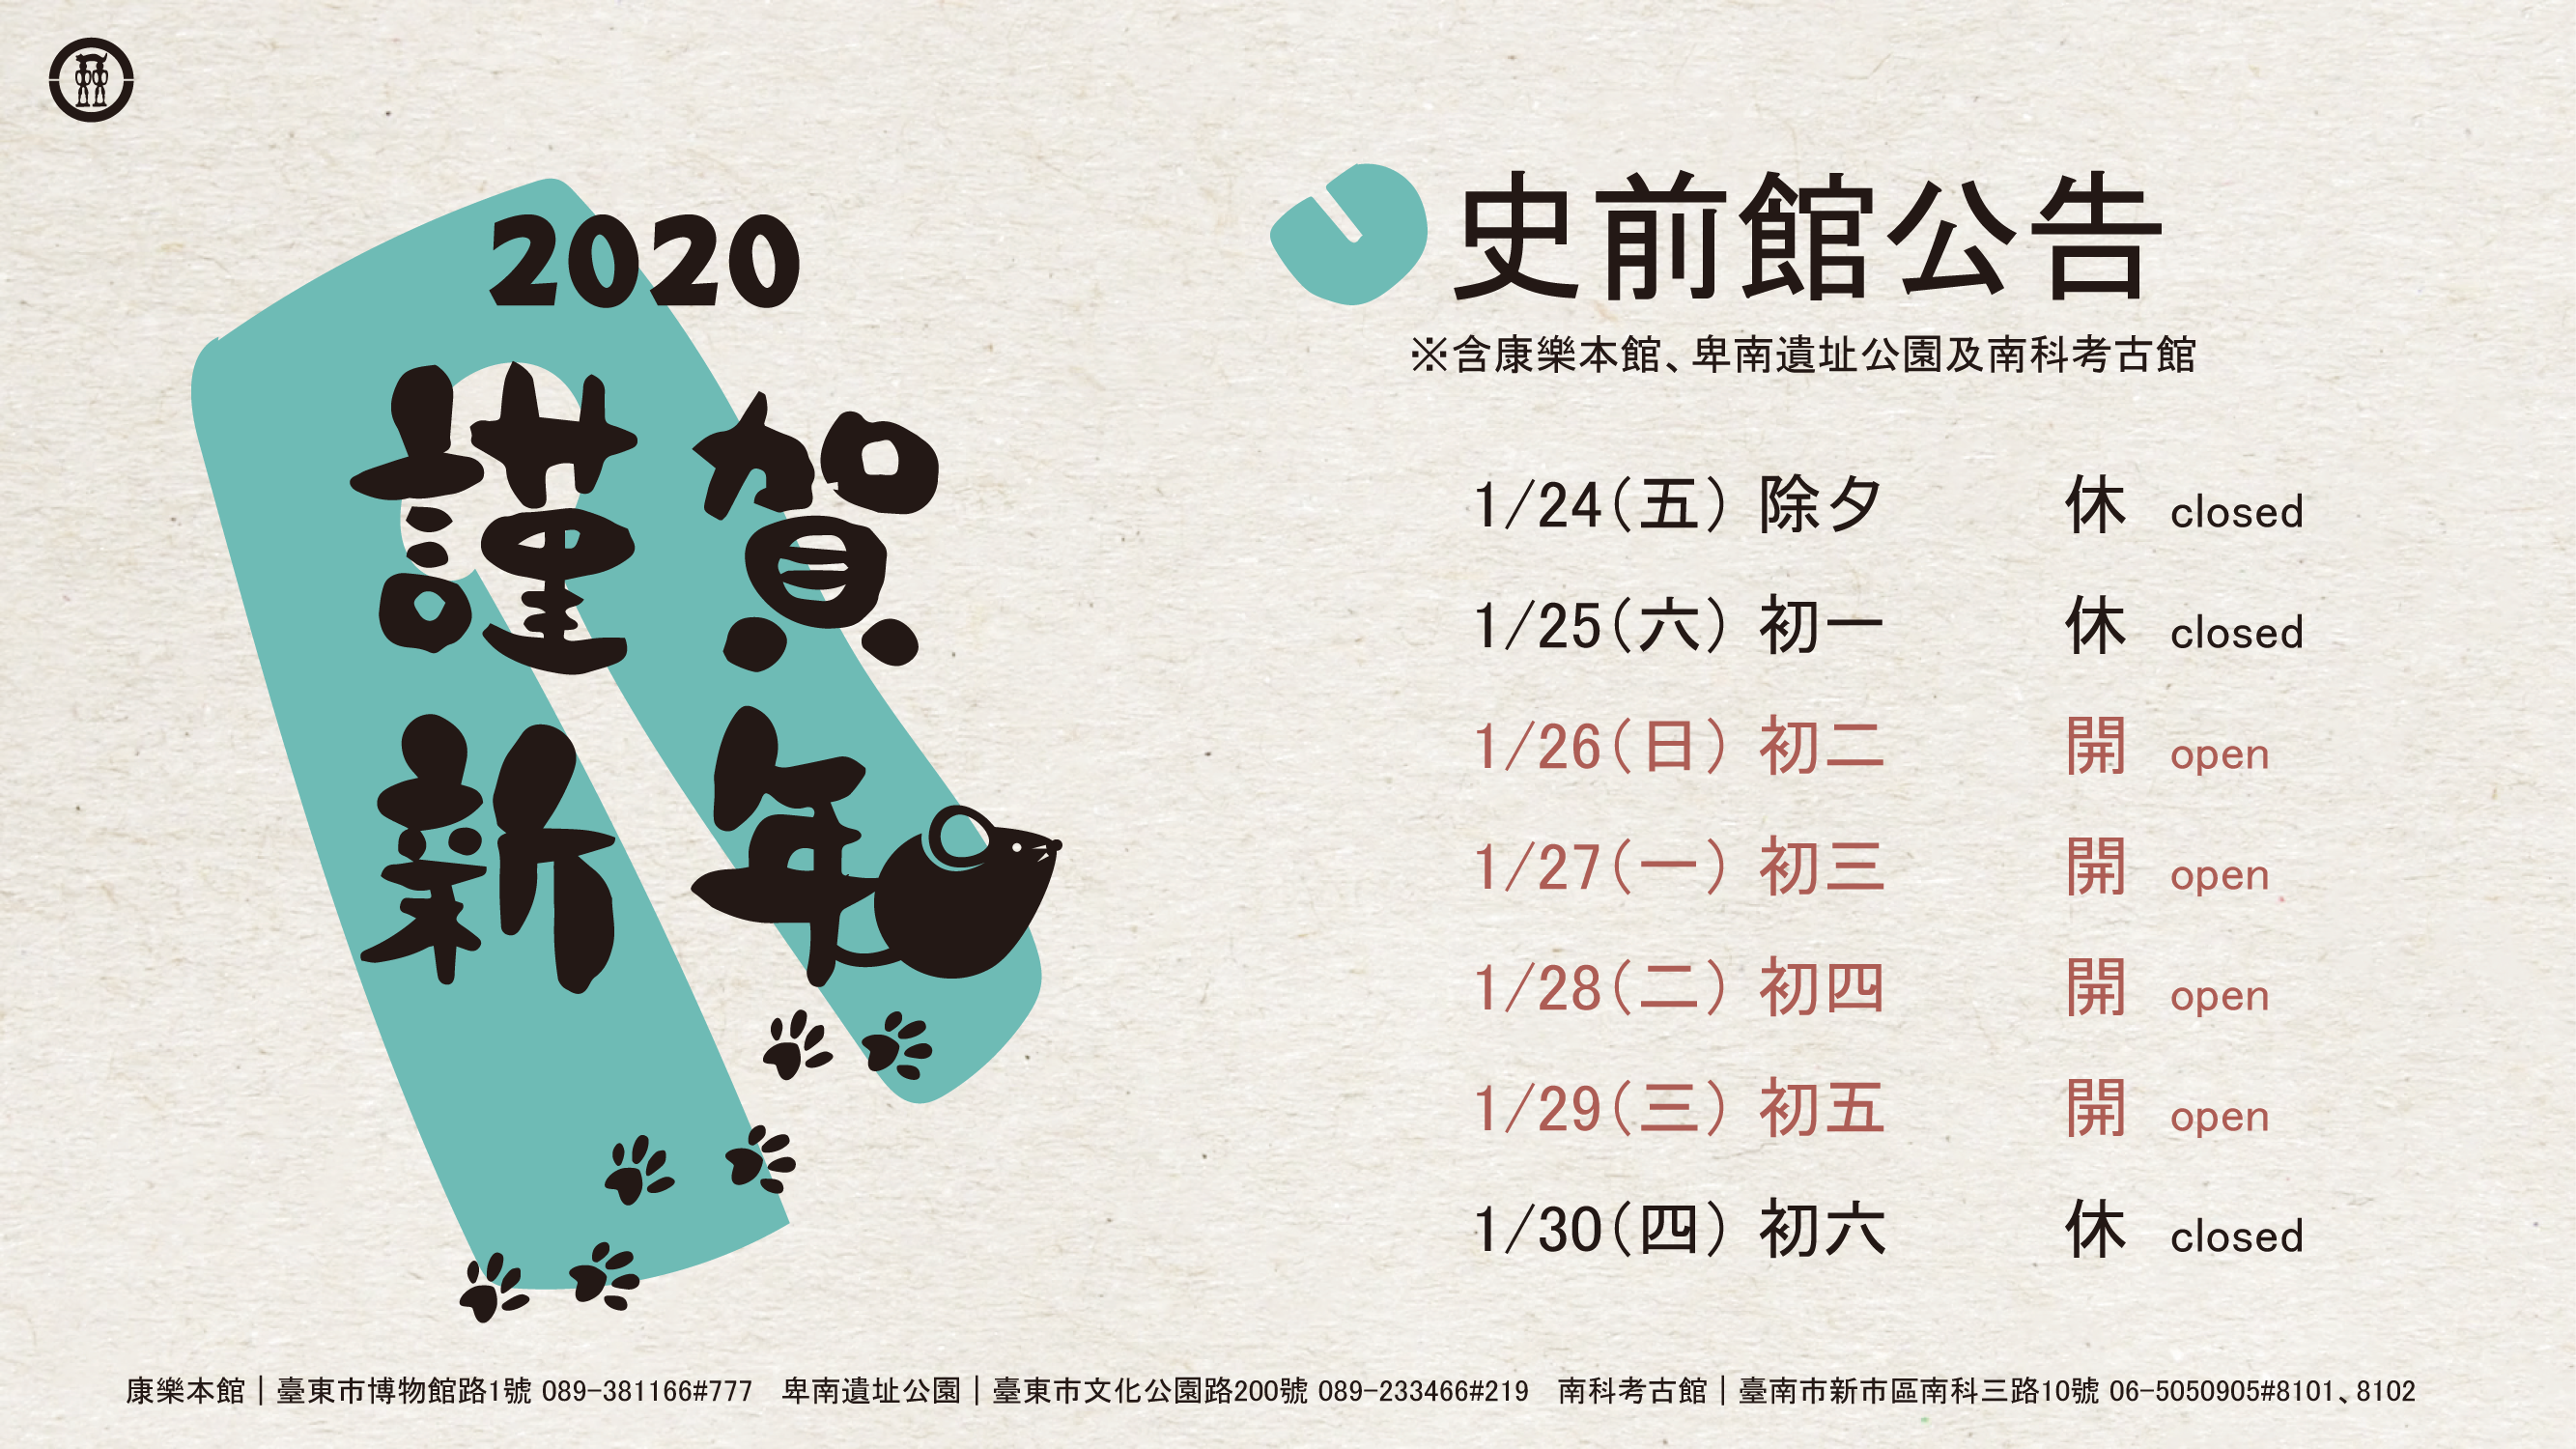 2020 Opening Hours During Chinese New Year.png